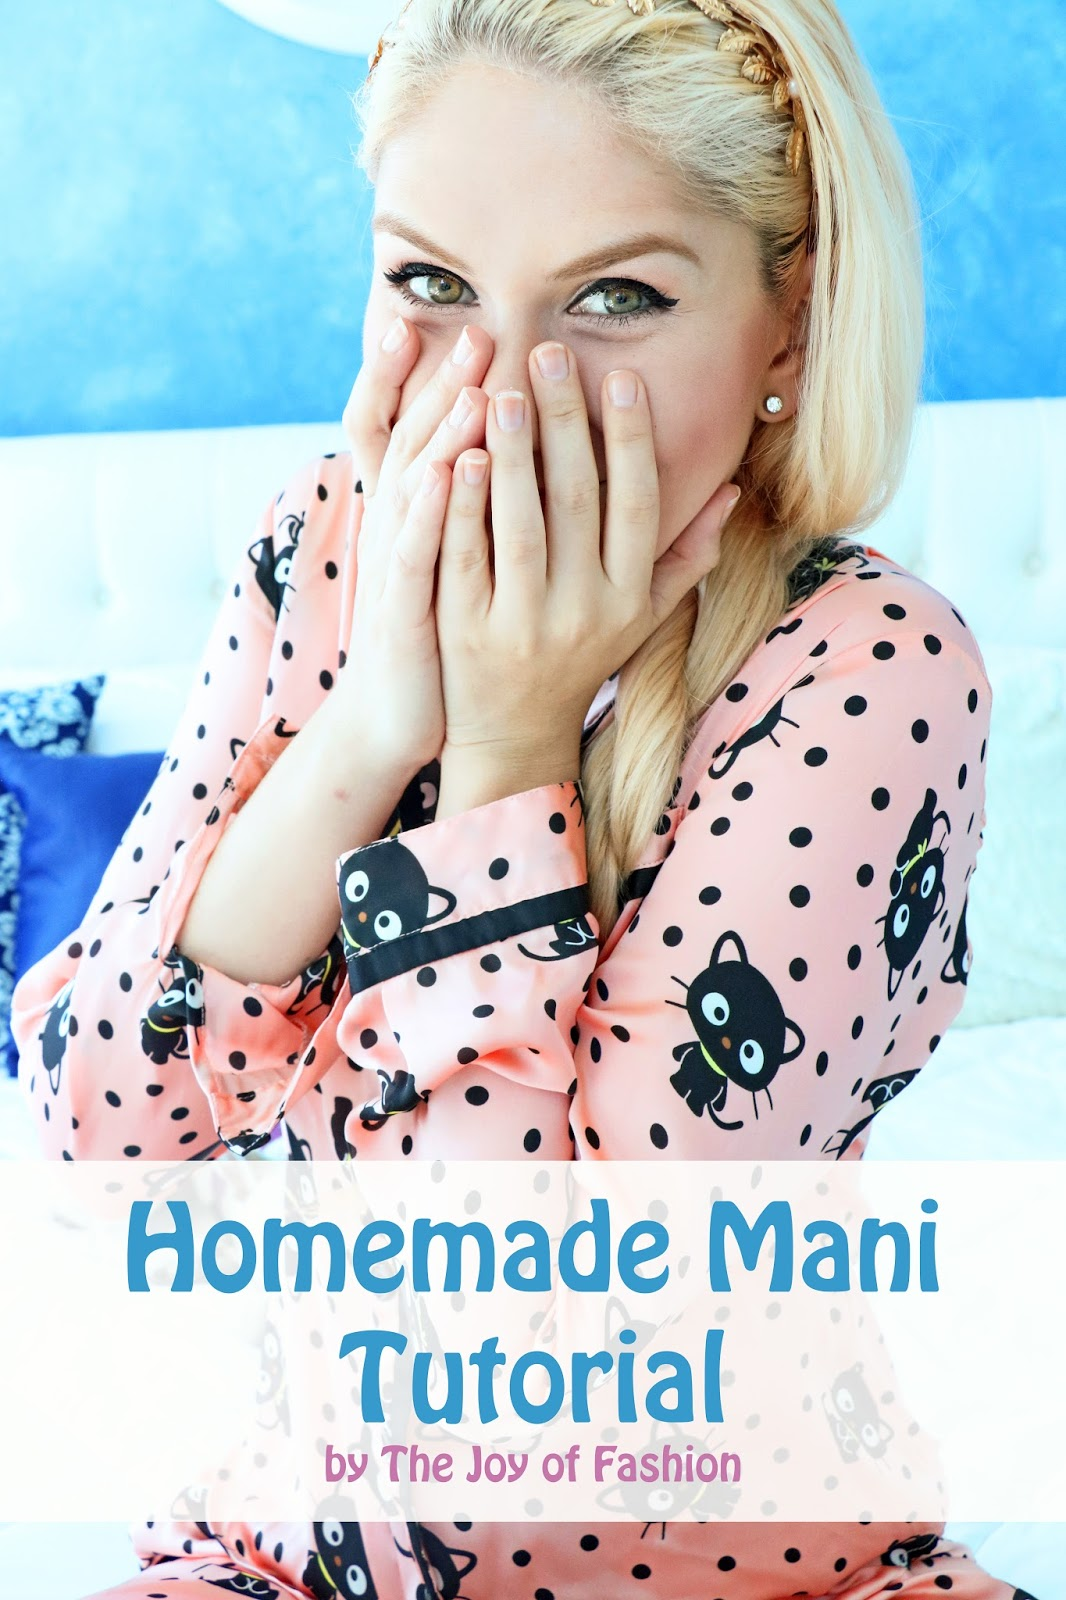 Click through to see the full tutorial on how to do a homemade manicure